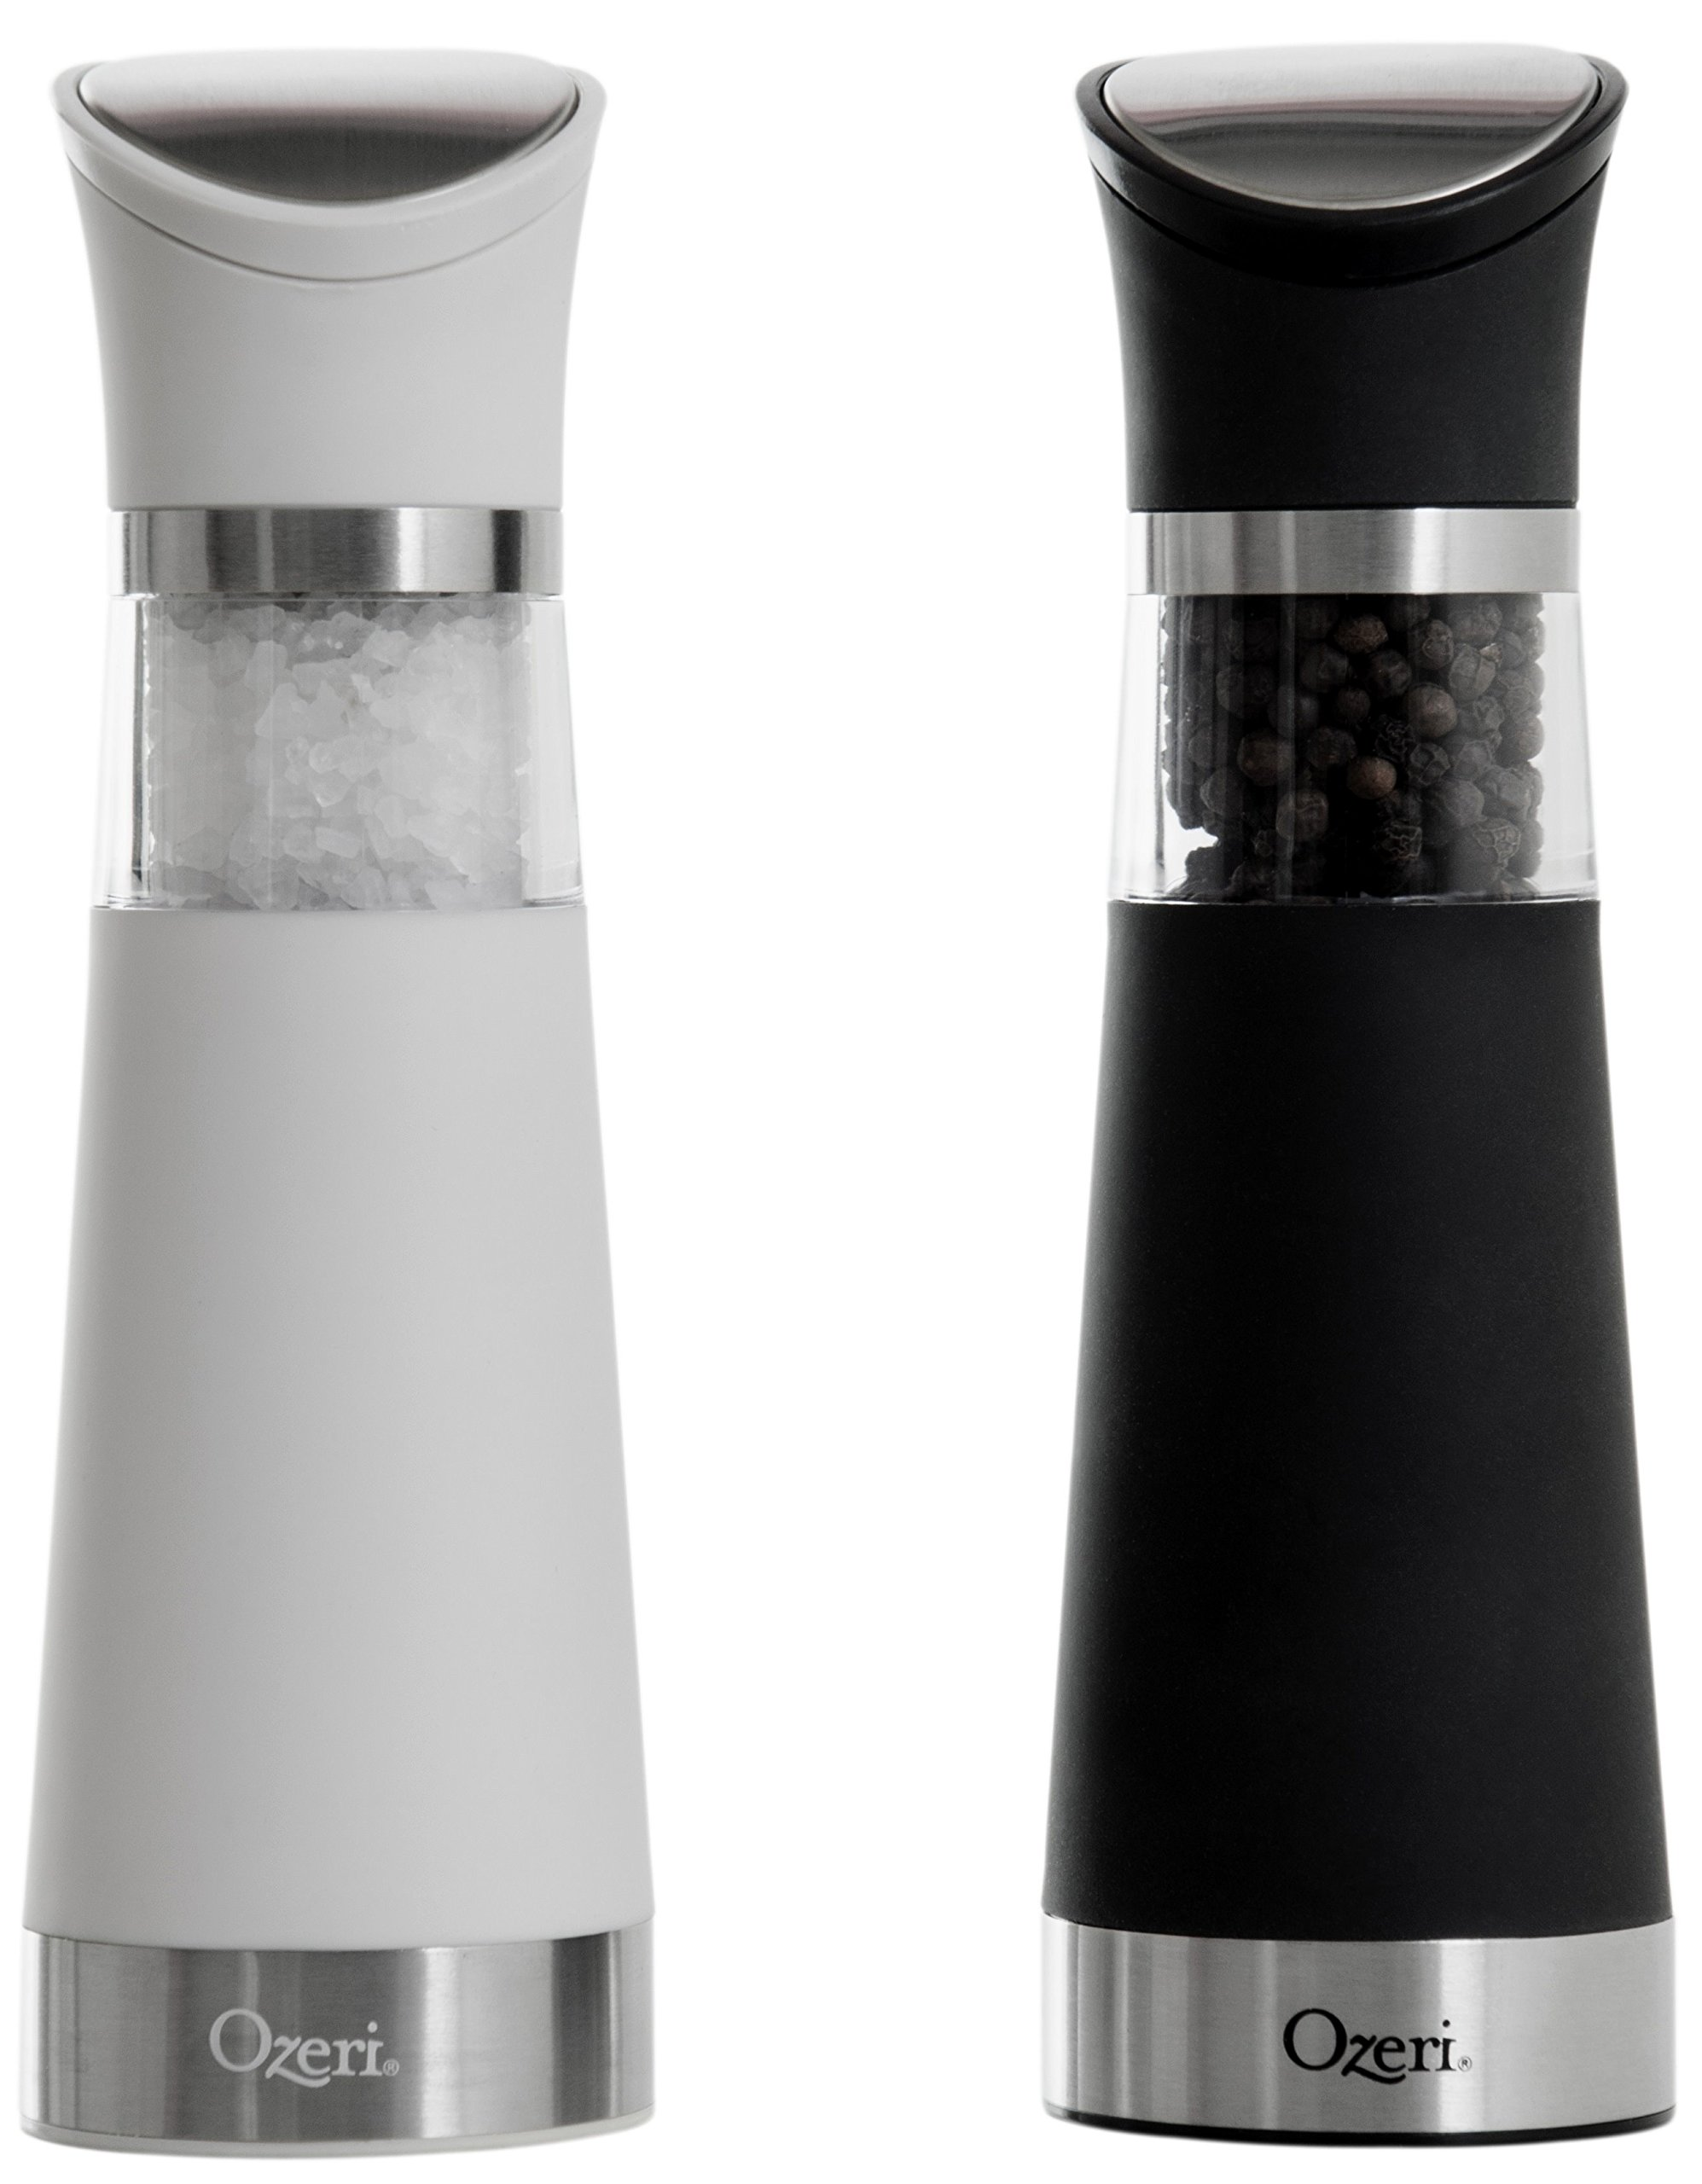 Salt And Pepper Shaker Set. Best For Restaurant, Cafe, Dining Room, Home Kitchen Table Kit. Electric Salt And Pepper Grinder Set - Bpa-free. Contemporary, Elegant And Refined For Any Table Setting.